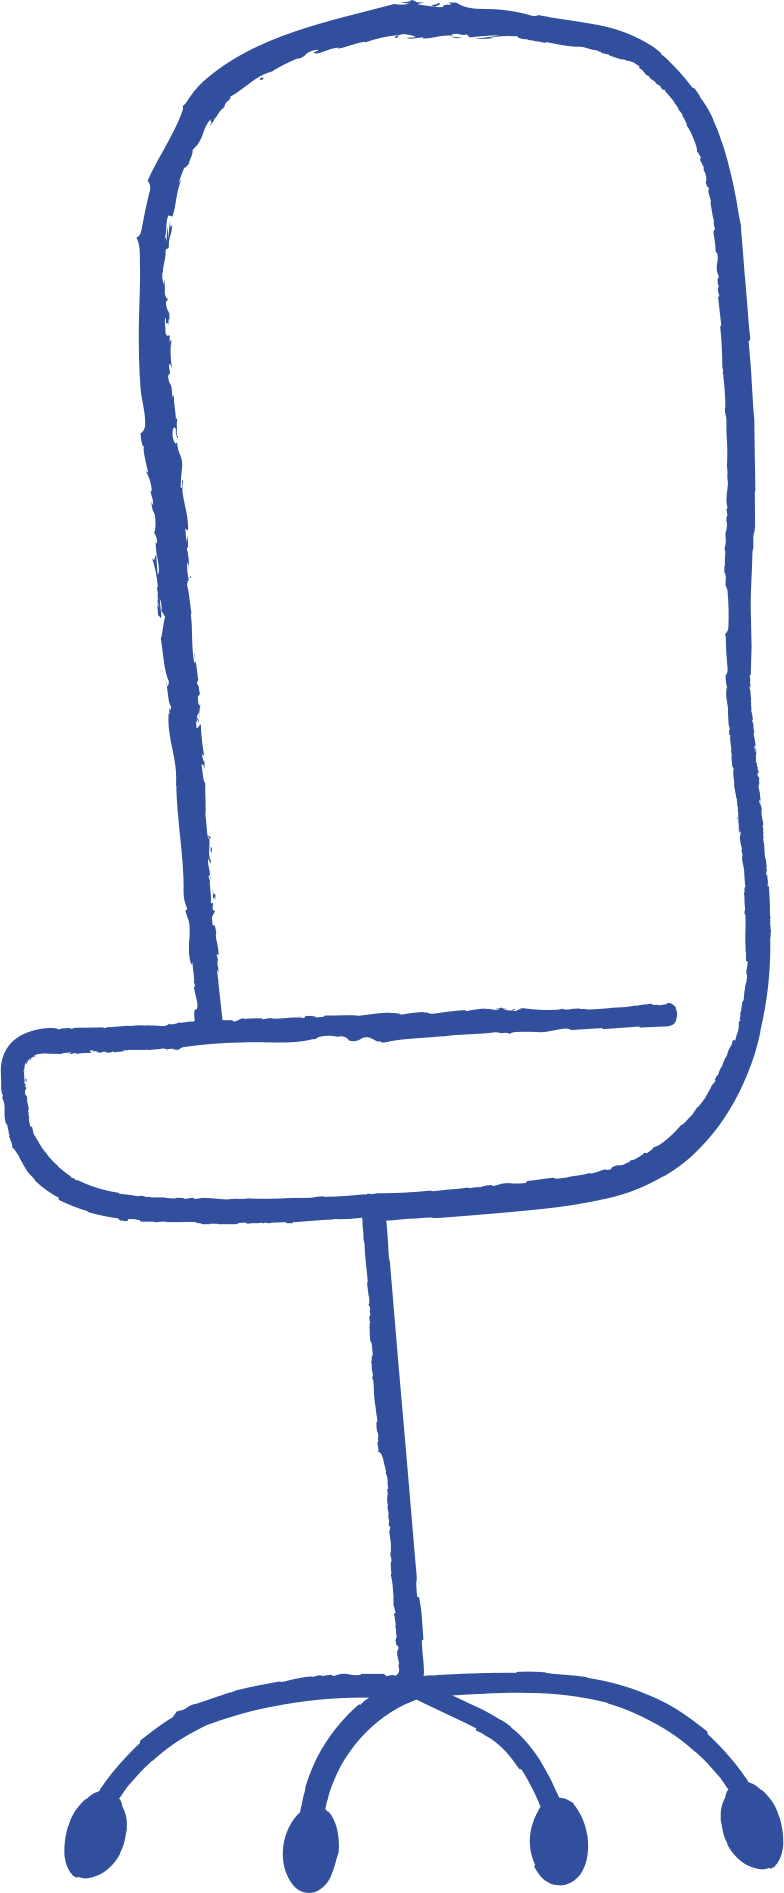 style office chair Vector images in PNG and SVG | Icons8 Illustrations